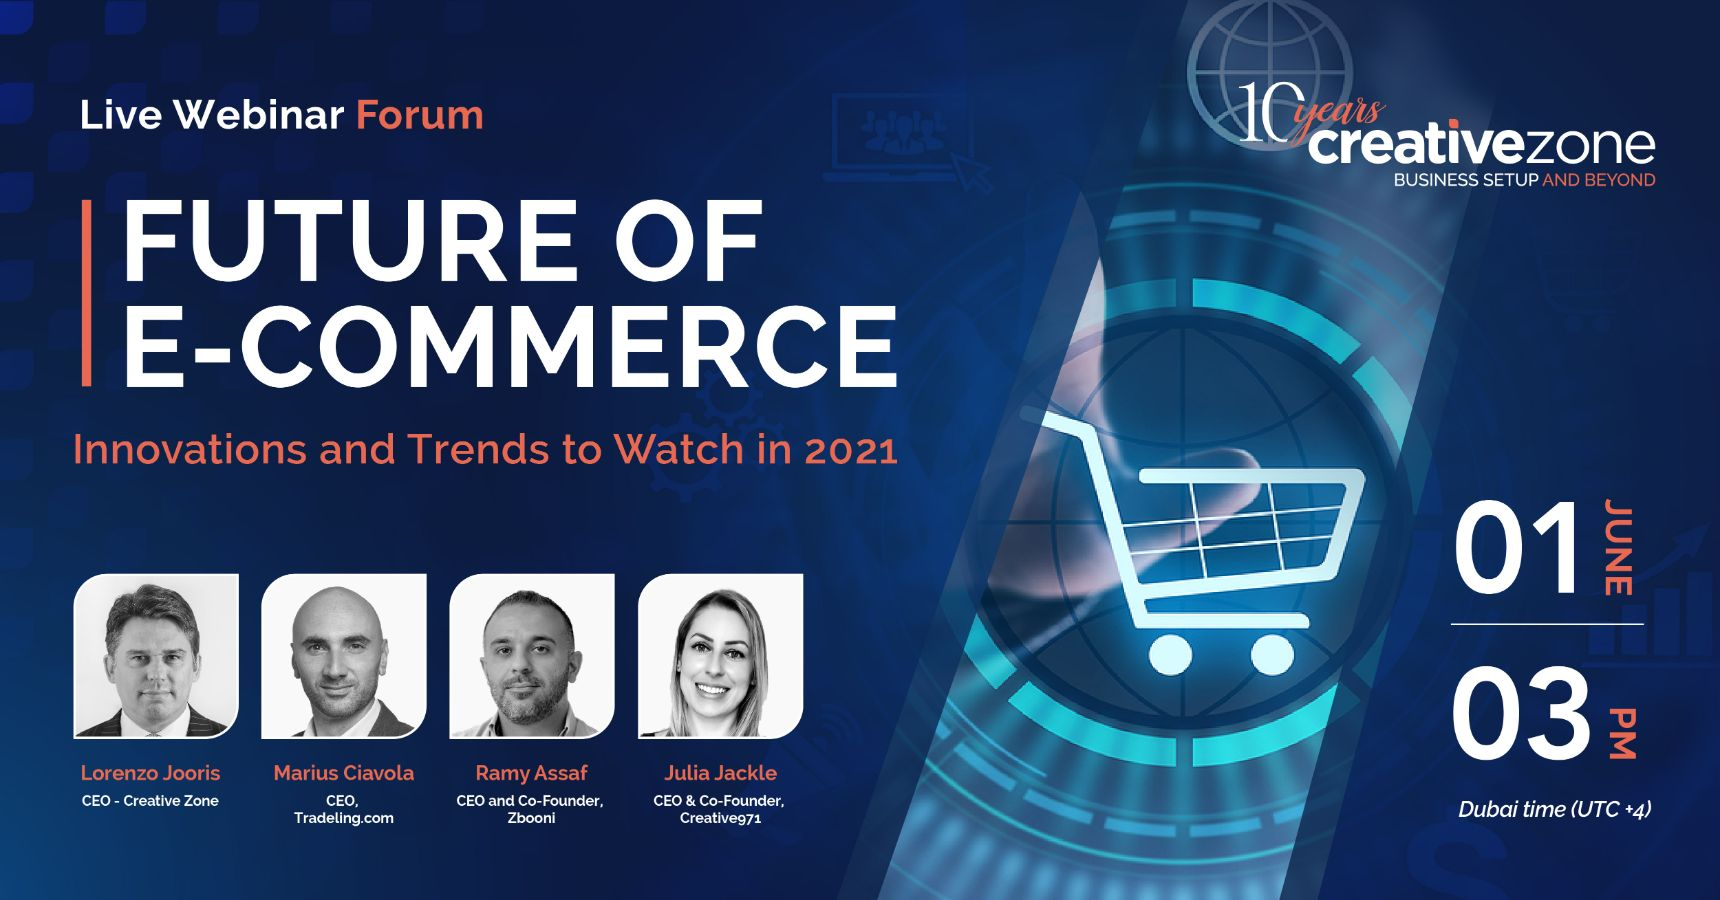 Creative Zone - Future of E-Commerce: Innovations and Trends to Watch in 2021